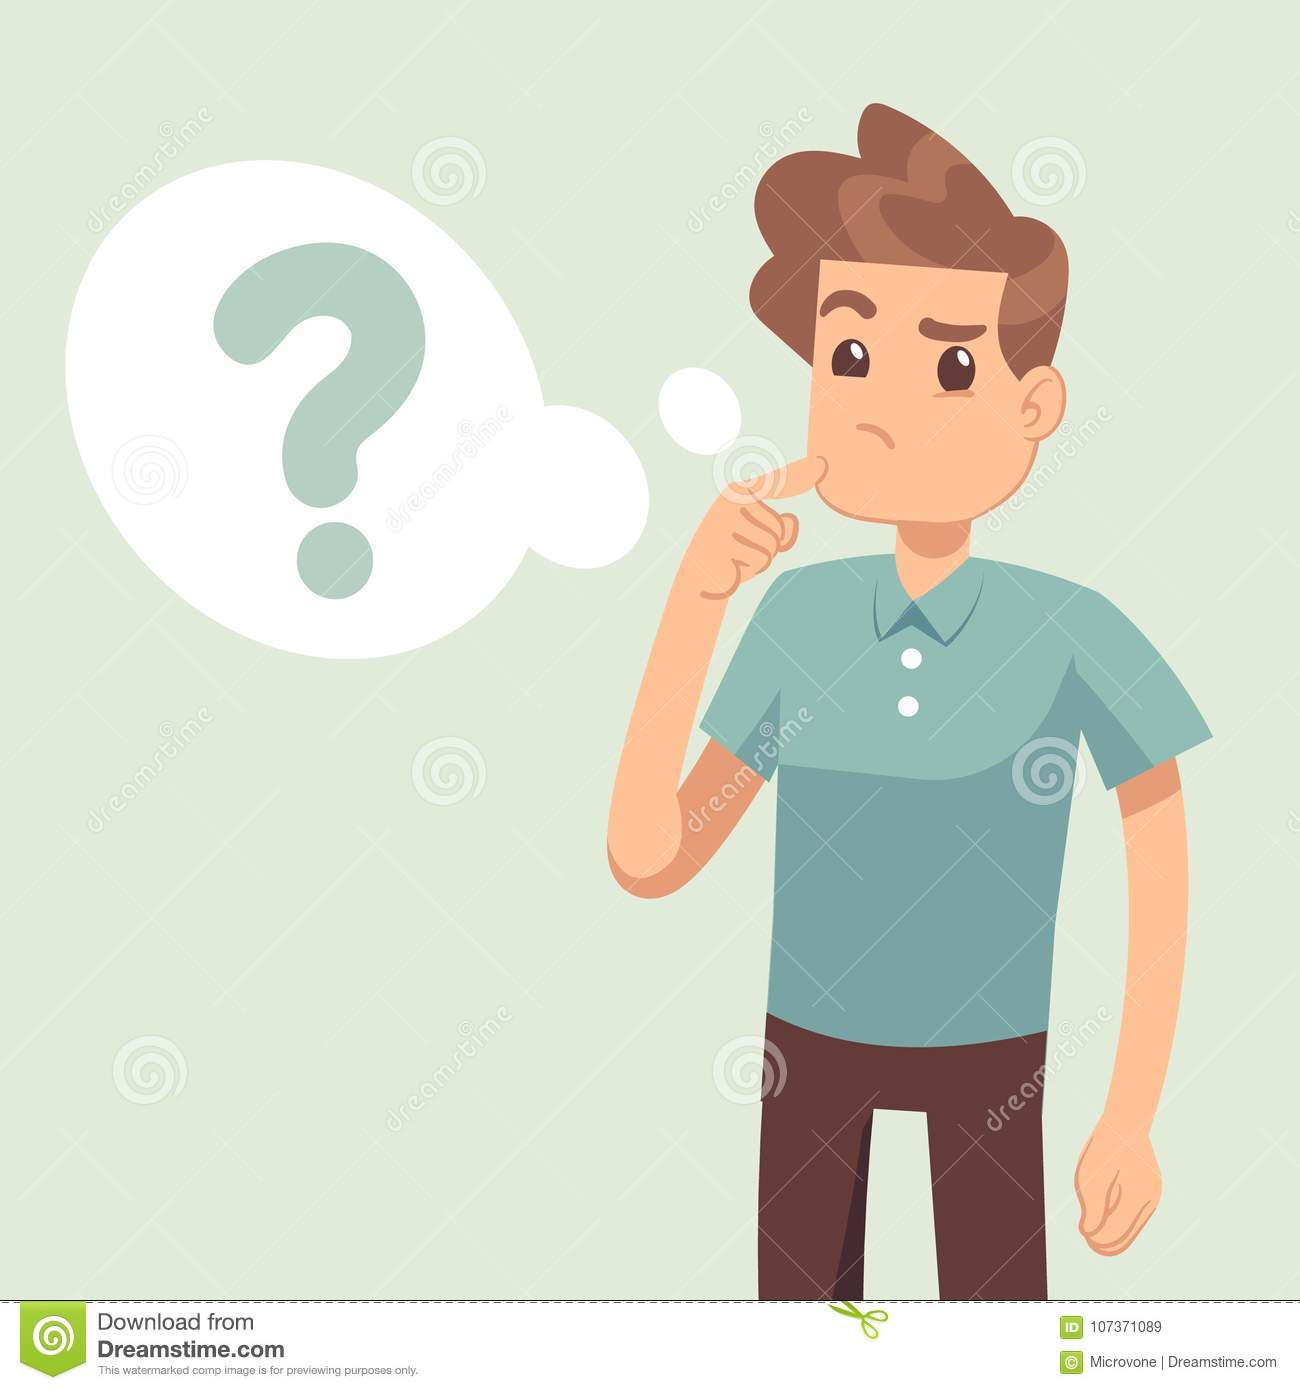 Question Mark Stock Photography Clip Art, PNG, 4500x4500px, Question Mark,  Blog, Facebook, Human Behavior, Joint Download